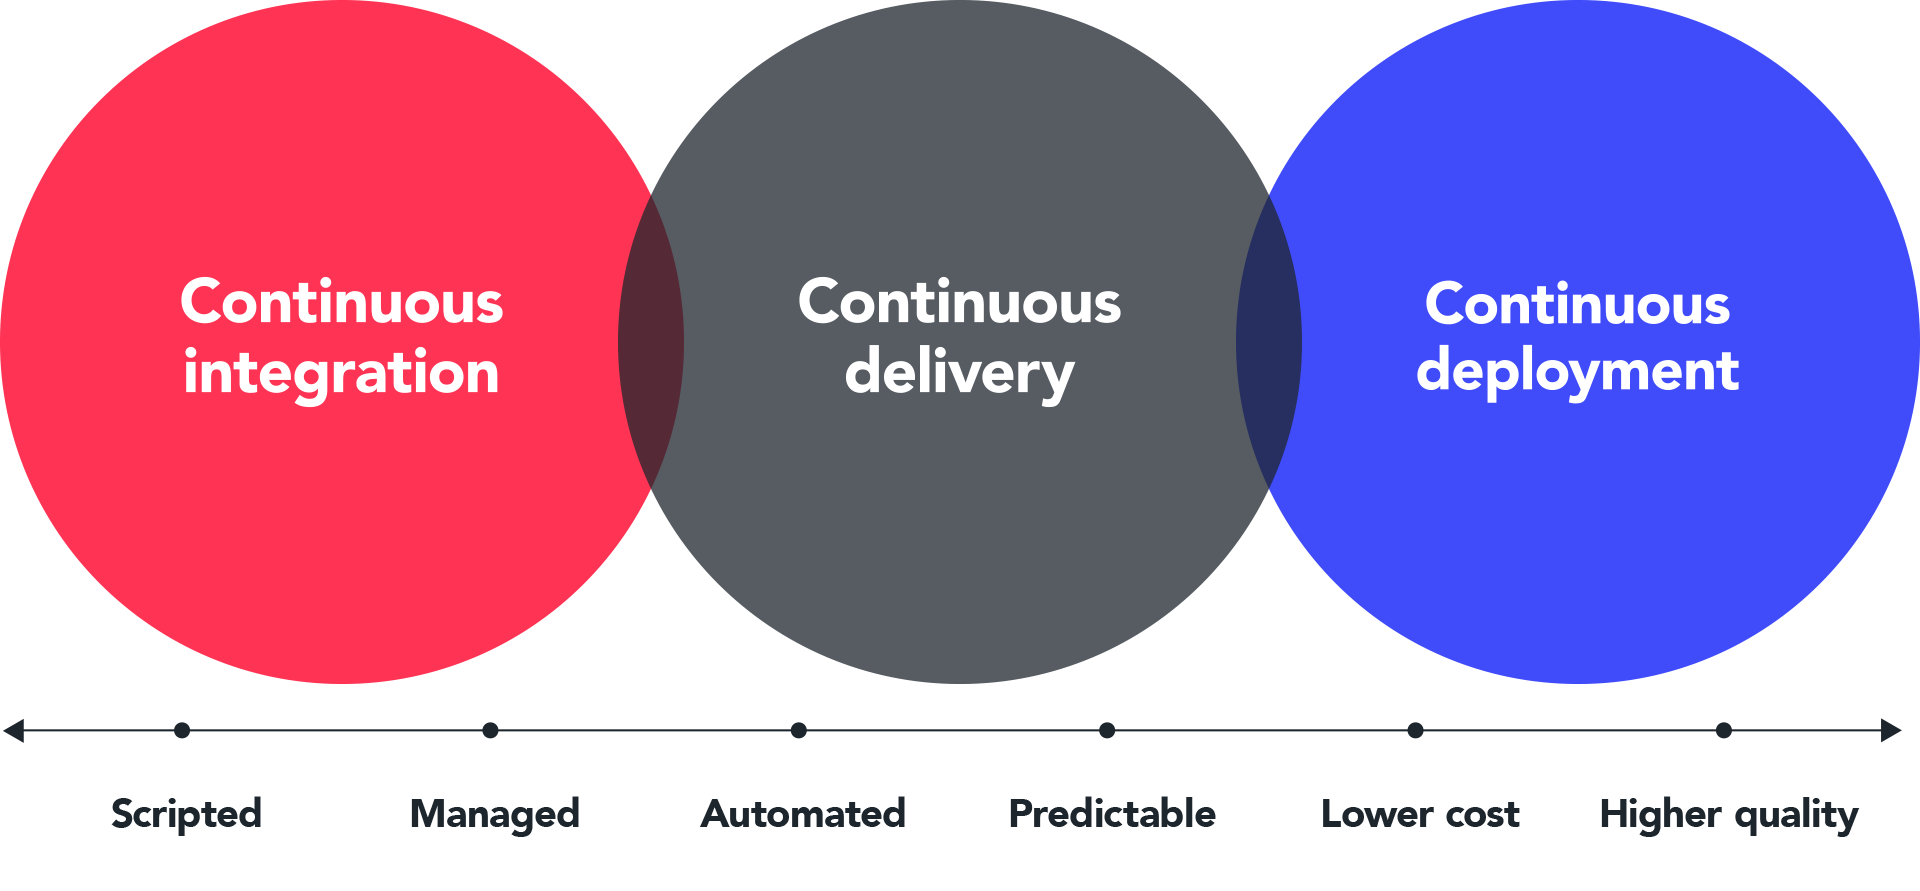 How to achieve continuous deployment